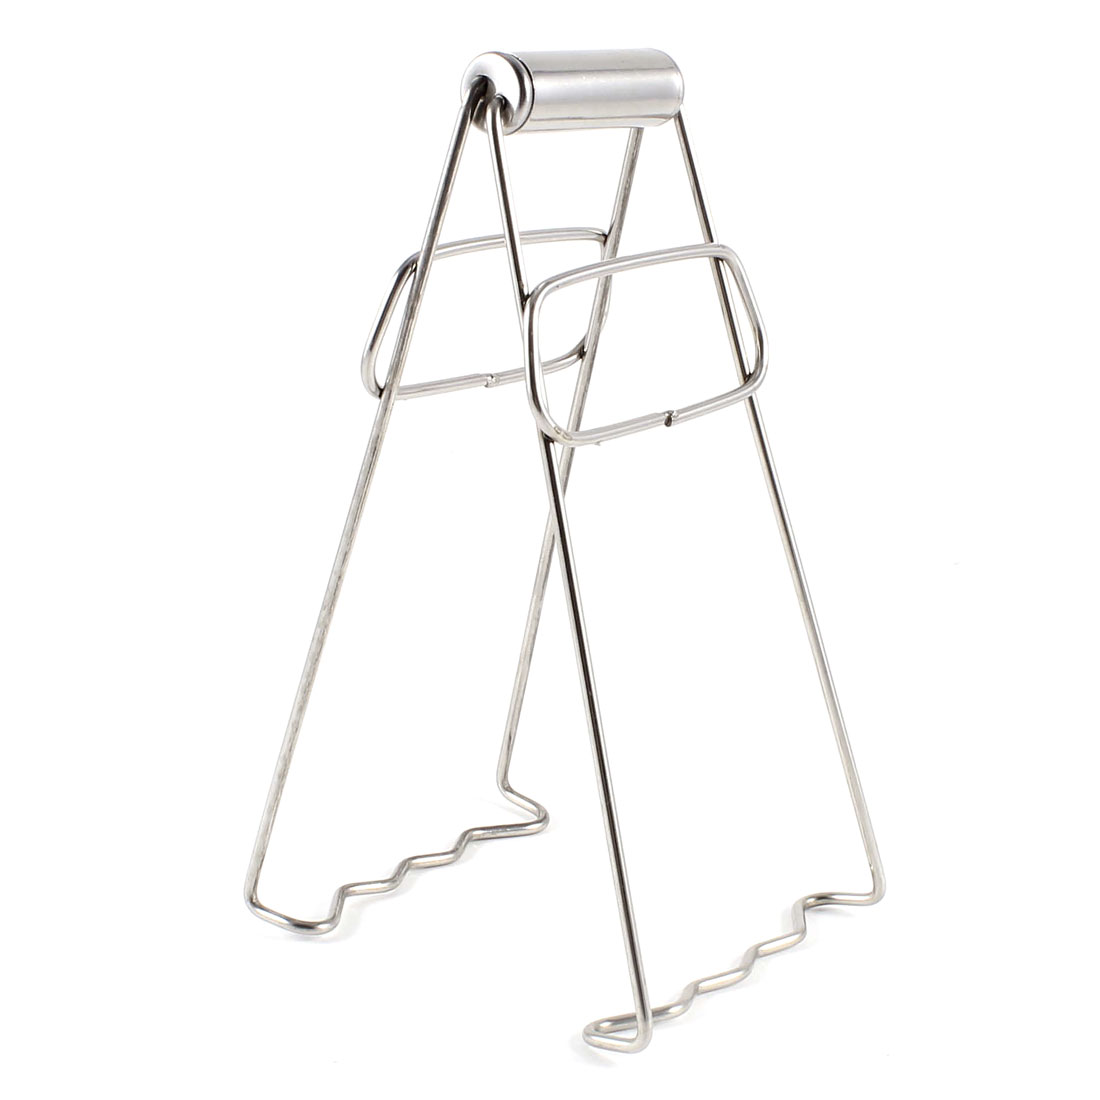 Stainless Steel Trapezoidal Wavy Double Feet Hot Pot Dish Plate Clip Clamp 7""